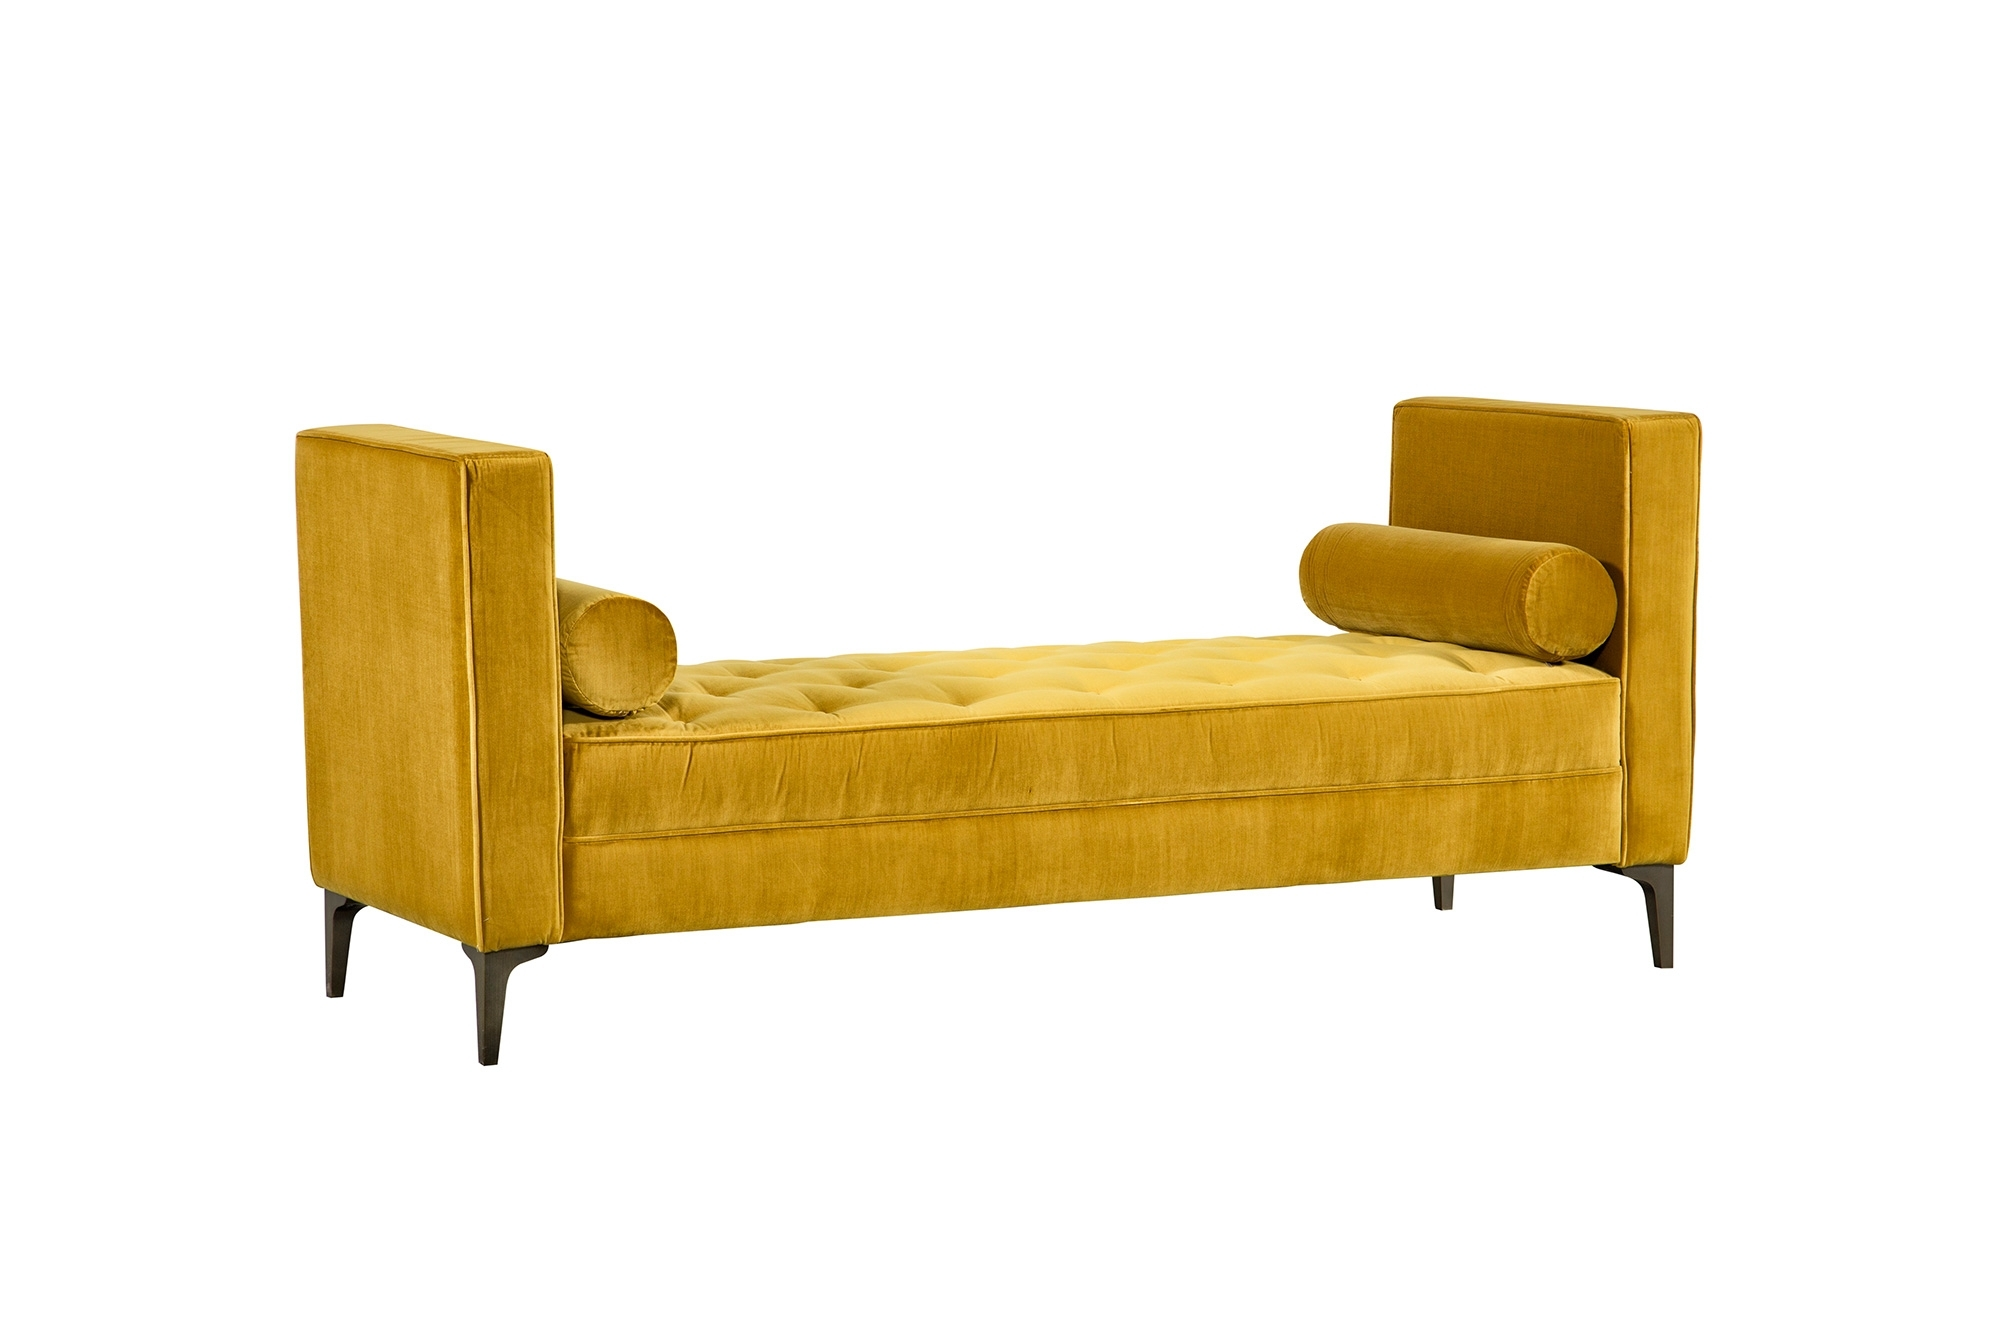 Nate Berkus, Jeremiah Brent For Living Spaces Furniture | People Within Soane 3 Piece Sectionals By Nate Berkus And Jeremiah Brent (Image 16 of 25)